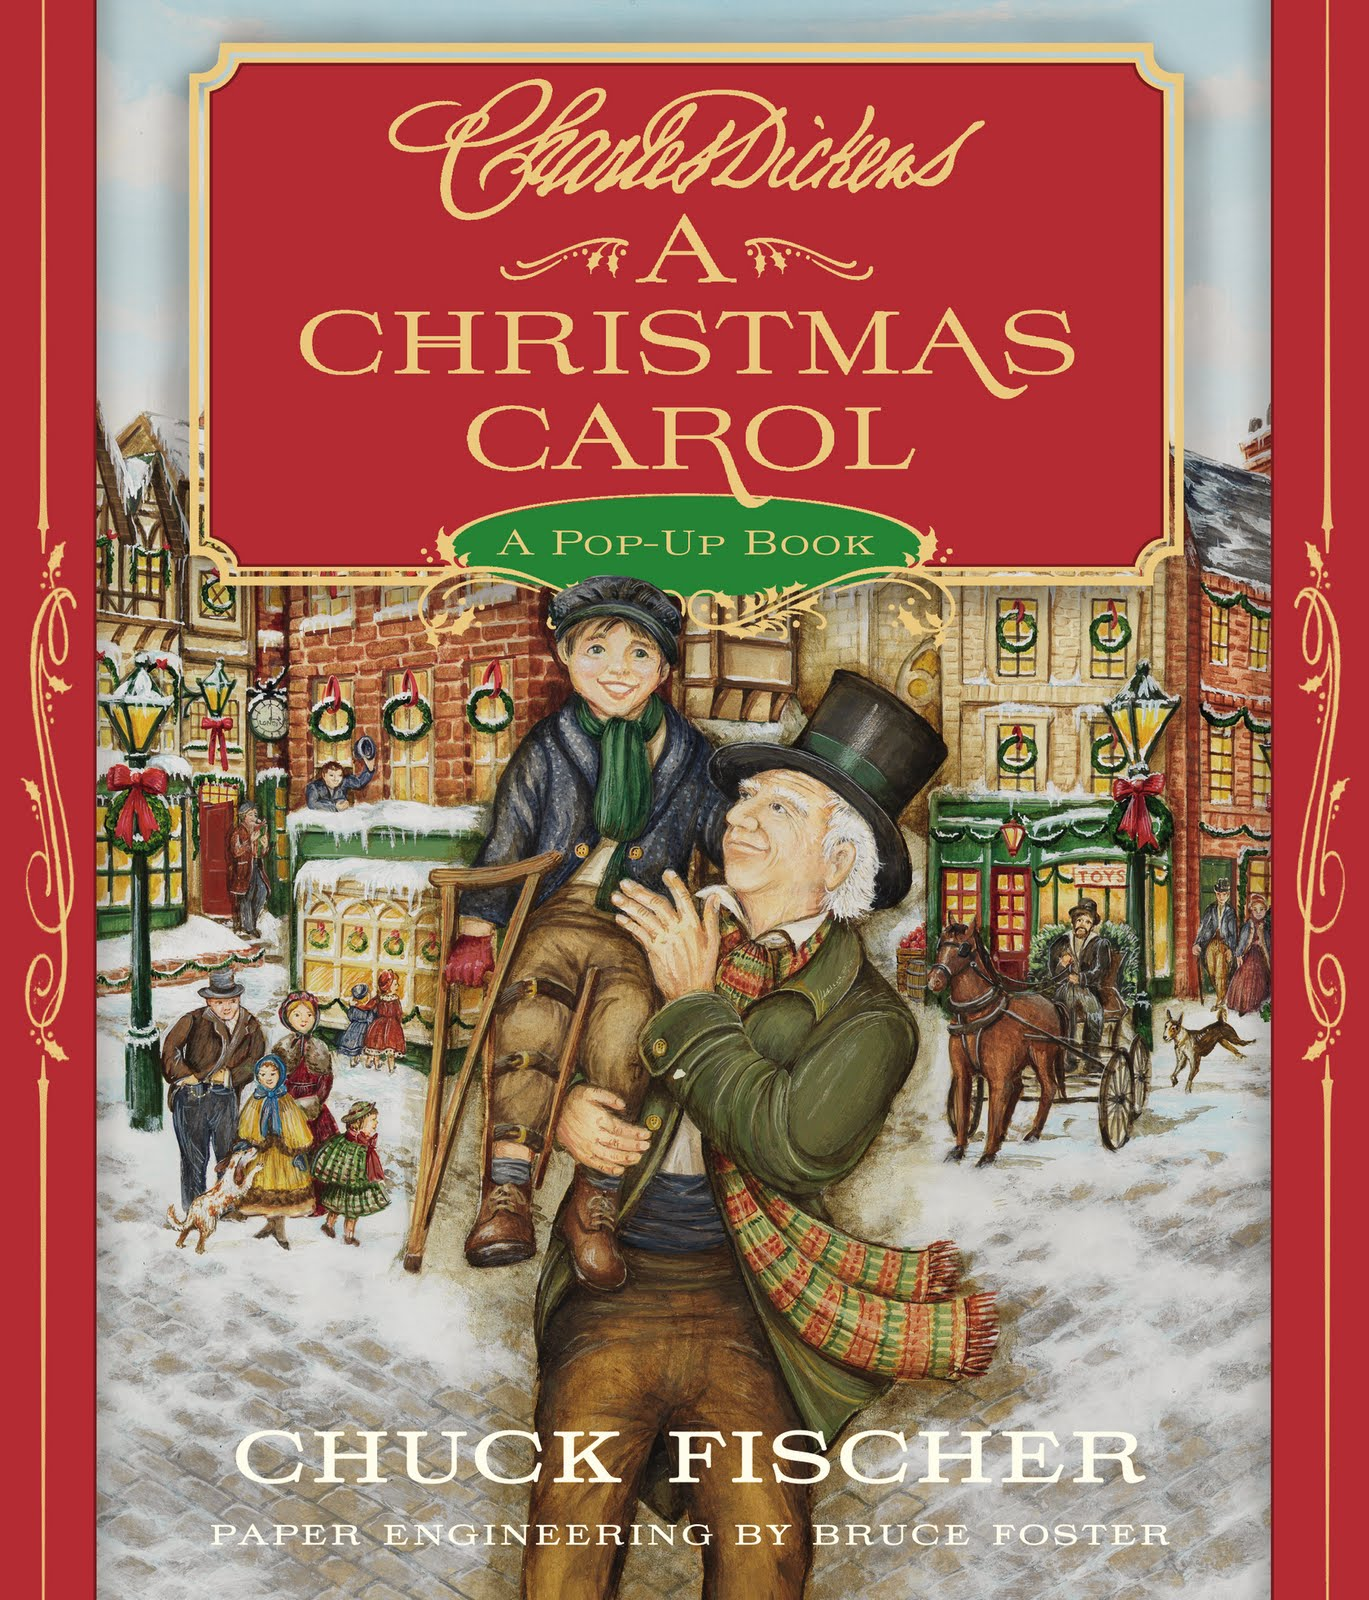 an analysis of the book a christmas carol by charles dickens A christmas carol book summary and study guide this charles dickens classic story about ghosts, ruthlessness, and the meaning of christmas is a well-written book.